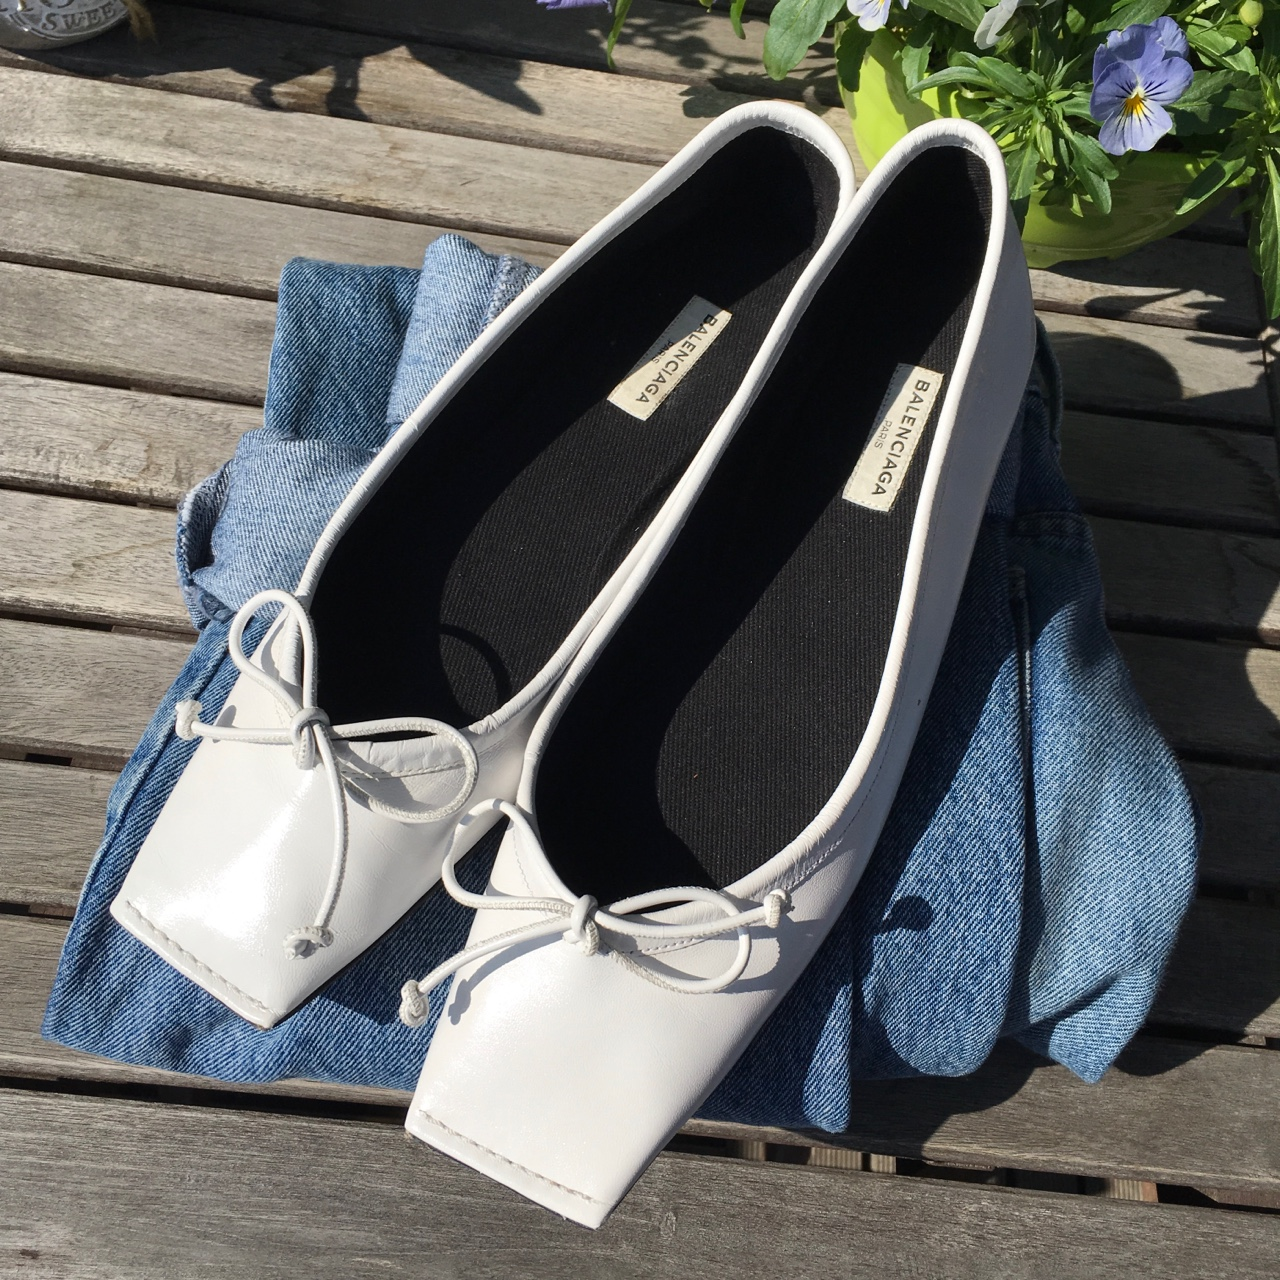 Balenciaga Square Toe Flats With Near To No Wear by Depop